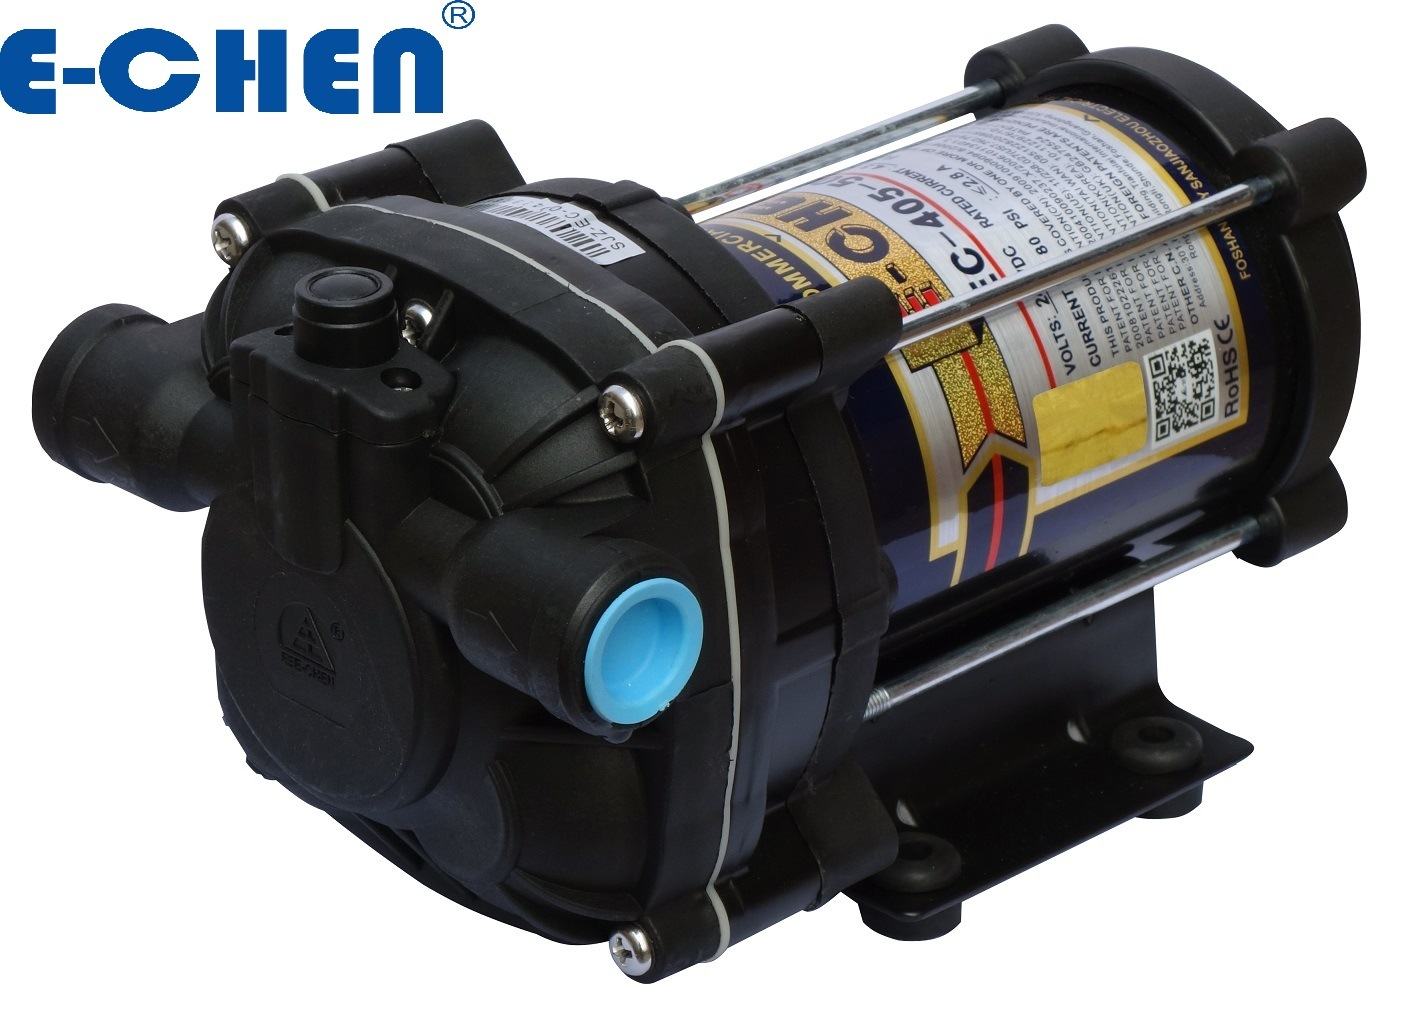 E-Chen Diaphragm Booster Pump 500gpd 3.2 L/M Commercial Reverse Osmosis System